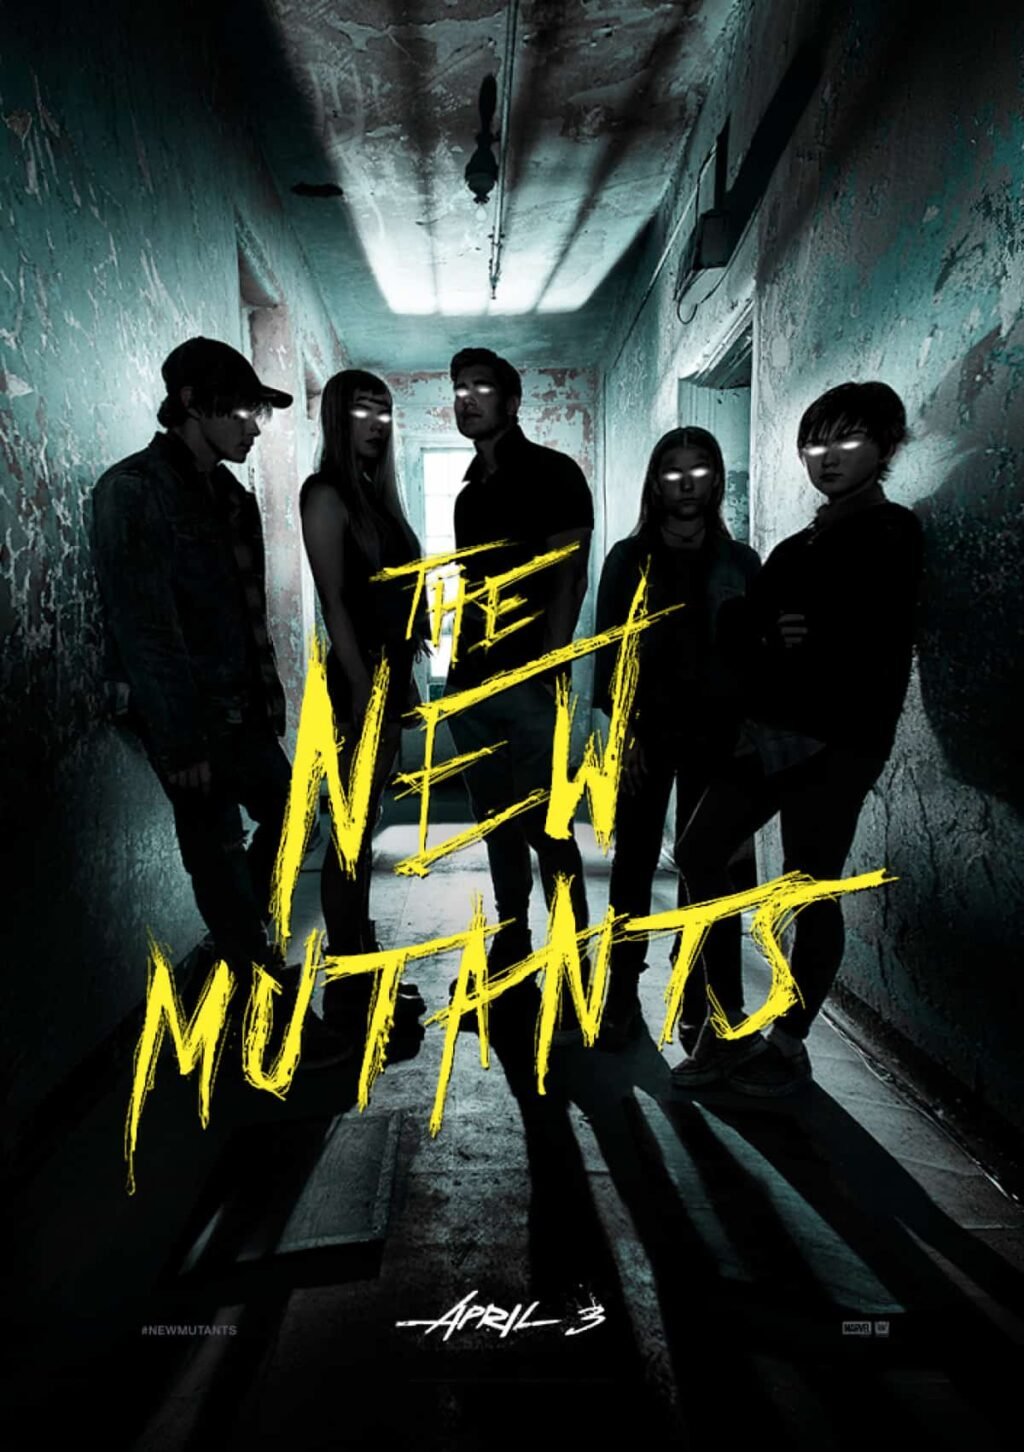 New Mutants Poster 4 DC 2 1 1024x1452 - THE NEW MUTANTS Inspired by DREAM WARRIORS & THE SHINING